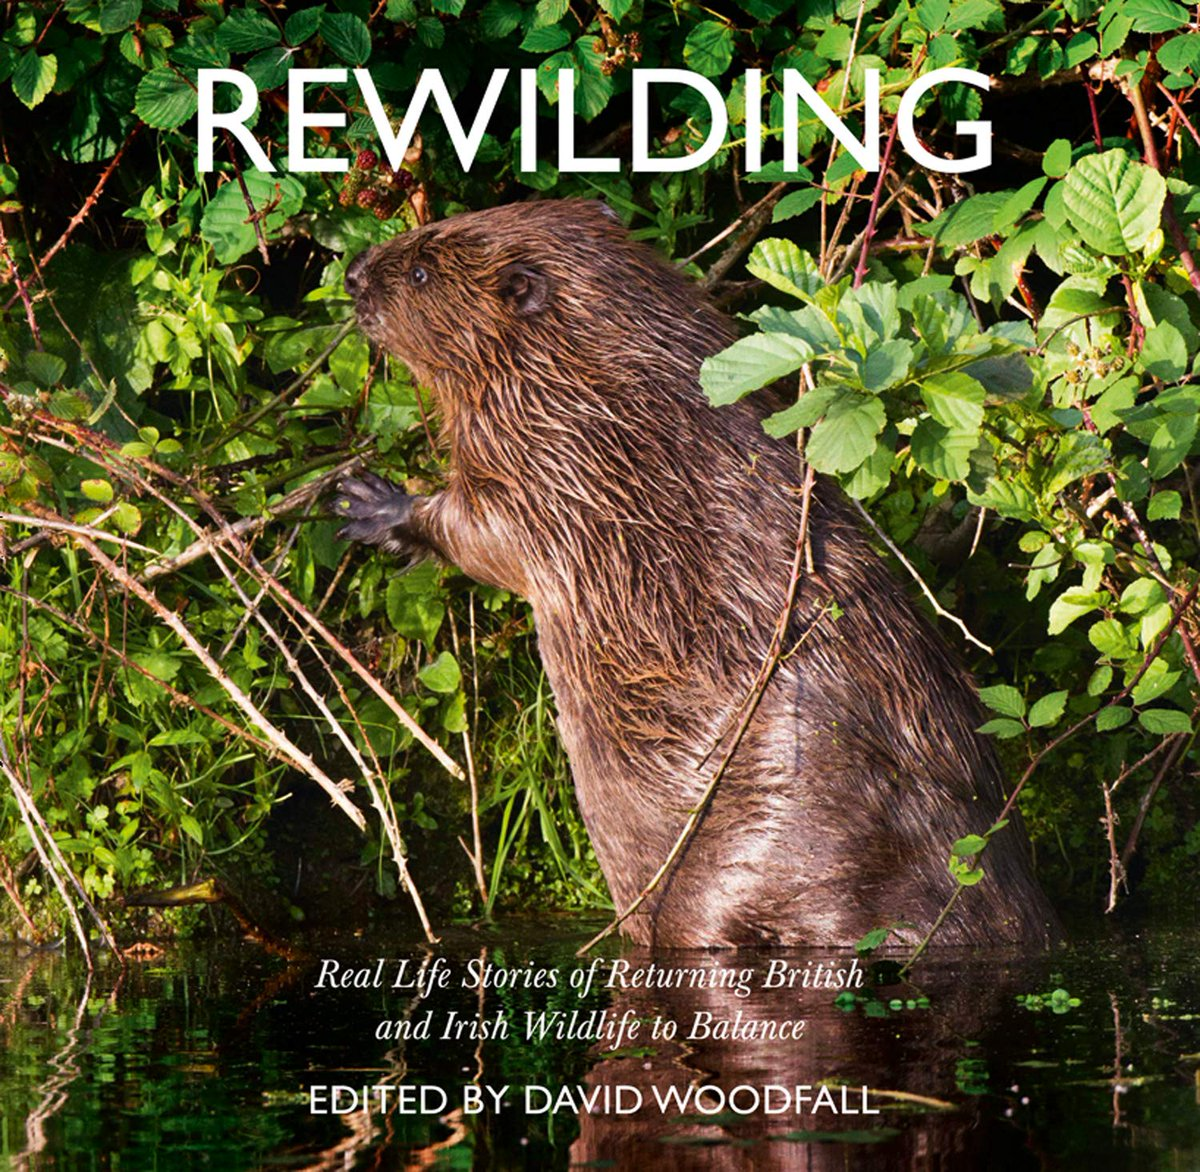 Image for Celebrate #WorldEnvironmentDay by booking your ticket for 'Rewilding: An Illustrated Talk with Original Music' which is happening this Friday 7th June at 7pm.  Only £16 adults £12 under 16s and includes tasty supper! #RealMidWales #event #Rewild #photography #music #Powys #Wales https://t.co/iX6pm2mXYs